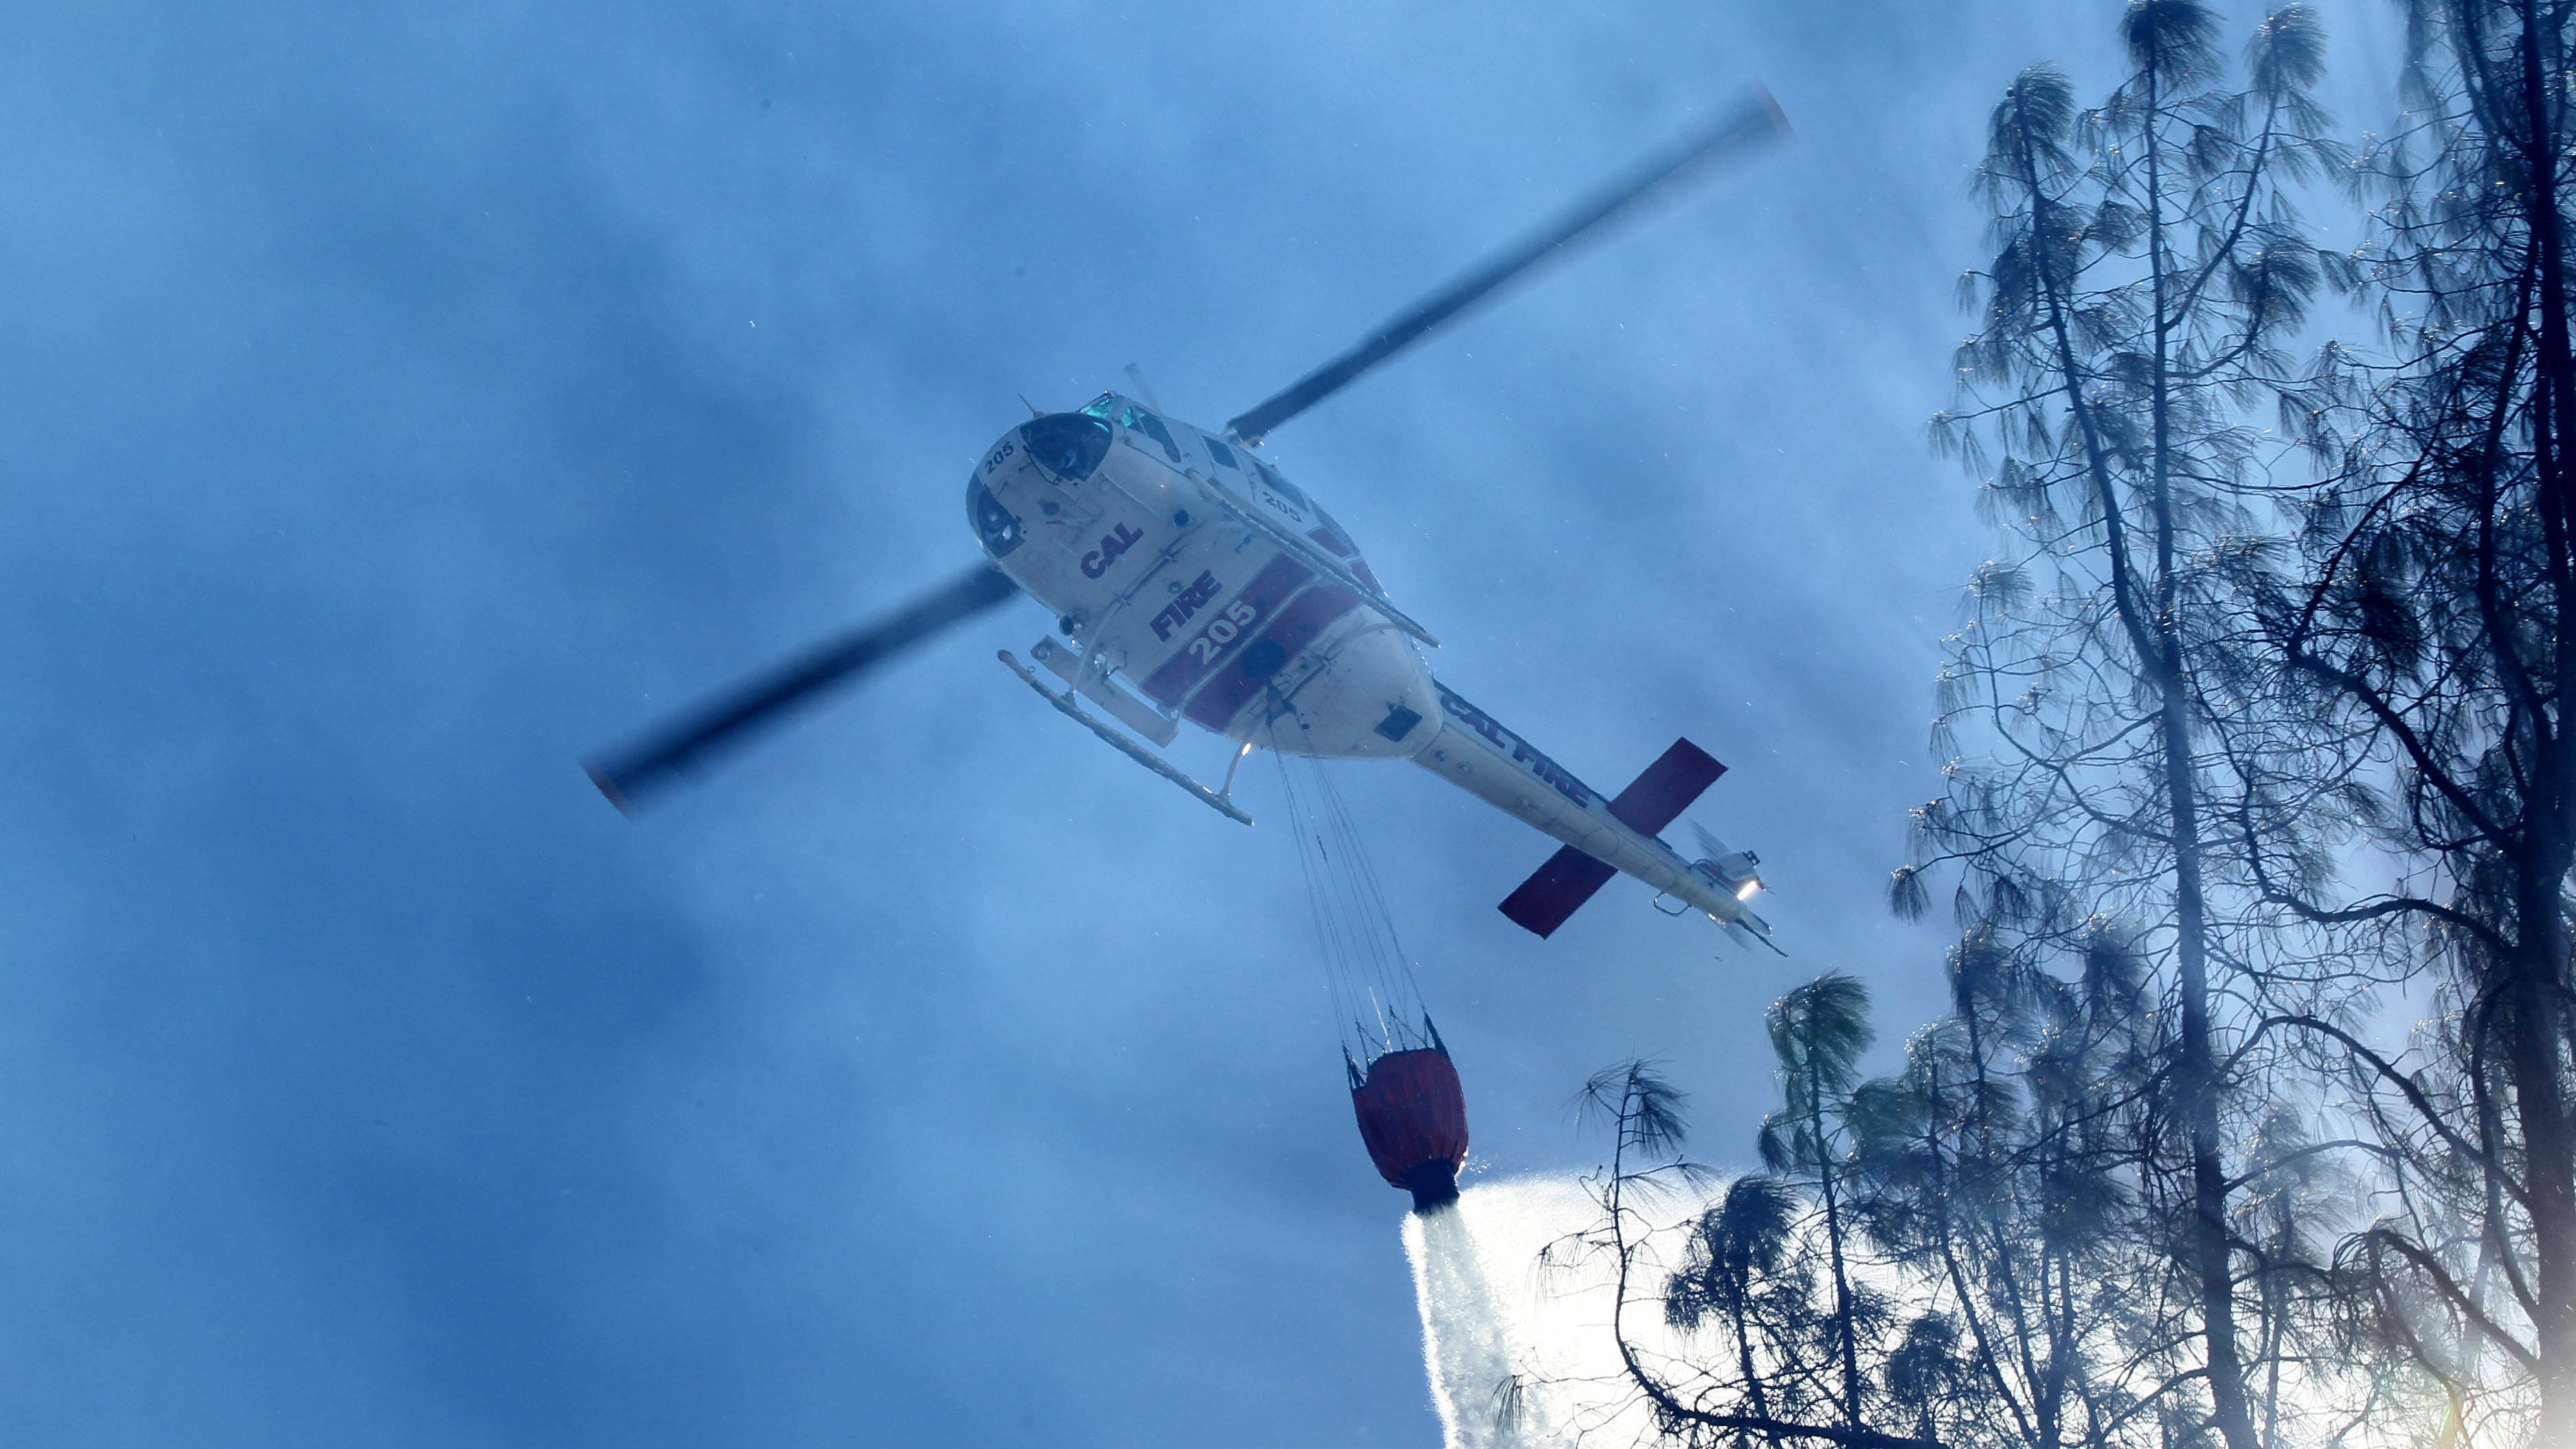 A Cal Fire helicopter drops water on the Masonic Fire as it burns vegetation along Sulphur Creek Road on Sunday morning, Oct. 14, 2018. (Hung T. Vu/Special to the Record Searchlight)